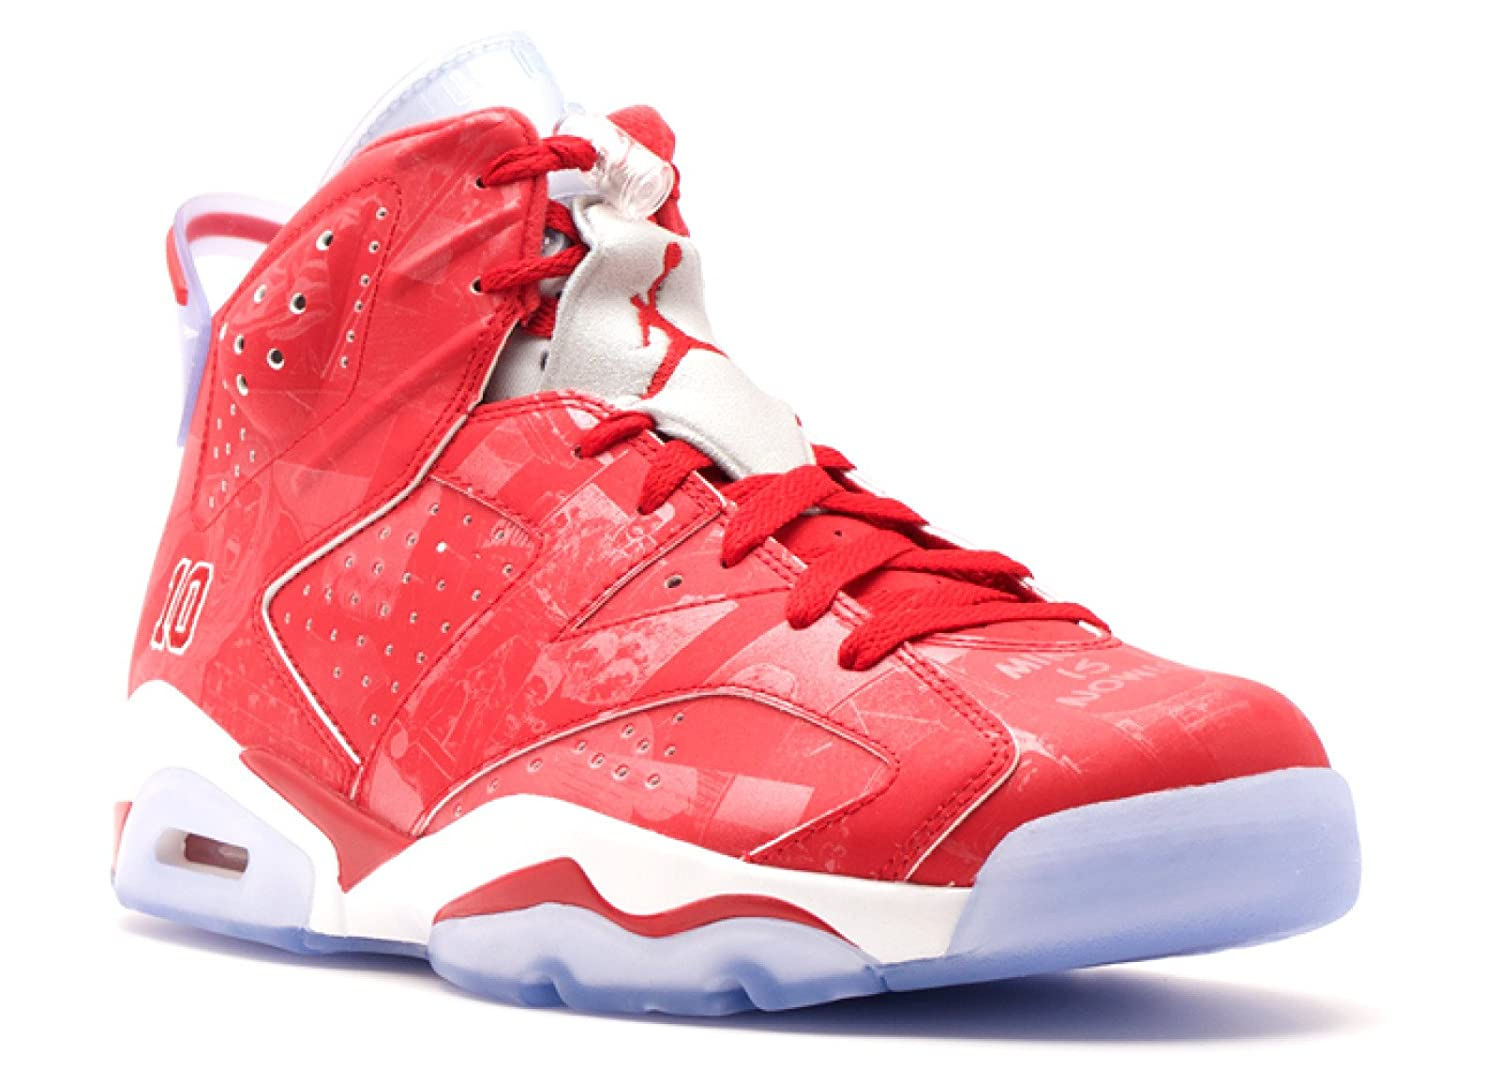 AIR JORDAN - エアジョーダン - AIR JORDAN 6 RETRO X SLAM DUNK 'SLAM DUNK' - 717302-600 - SIZE 10.5 (メンズ)